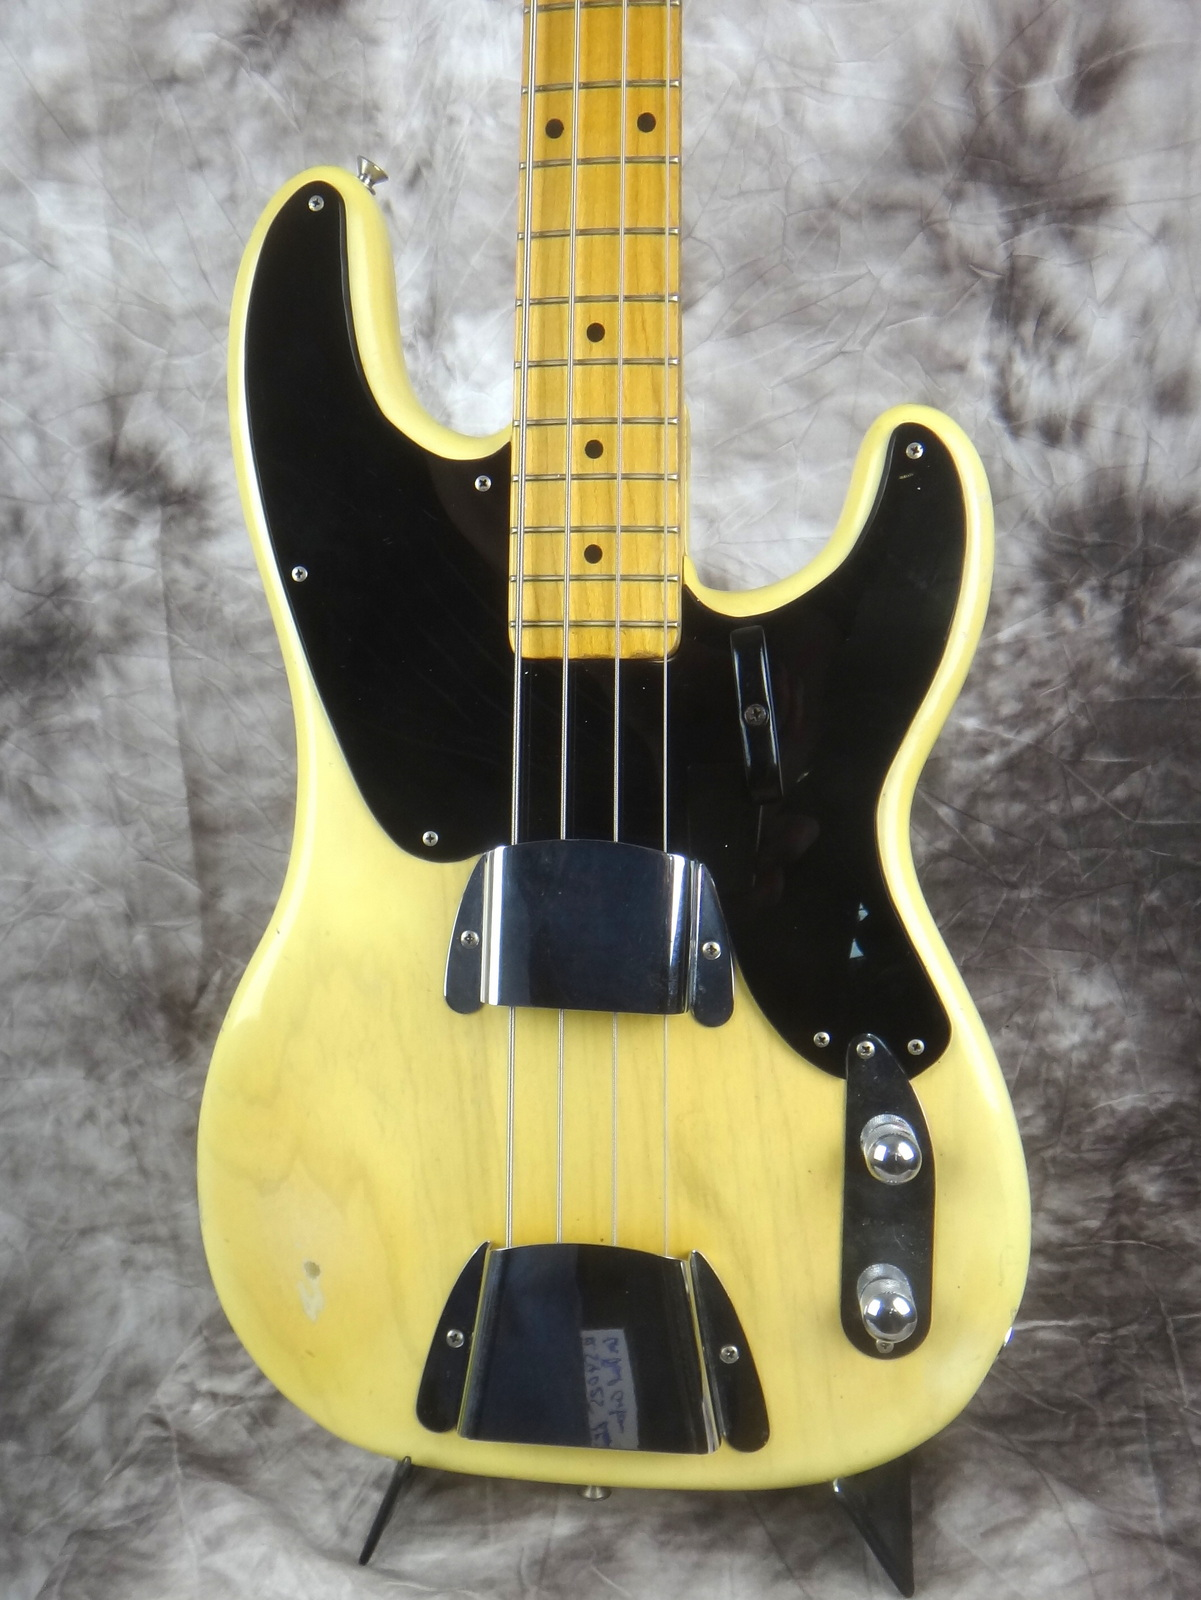 img/vintage/1599/Fender-Precision-Bass-1955-blond-002.JPG